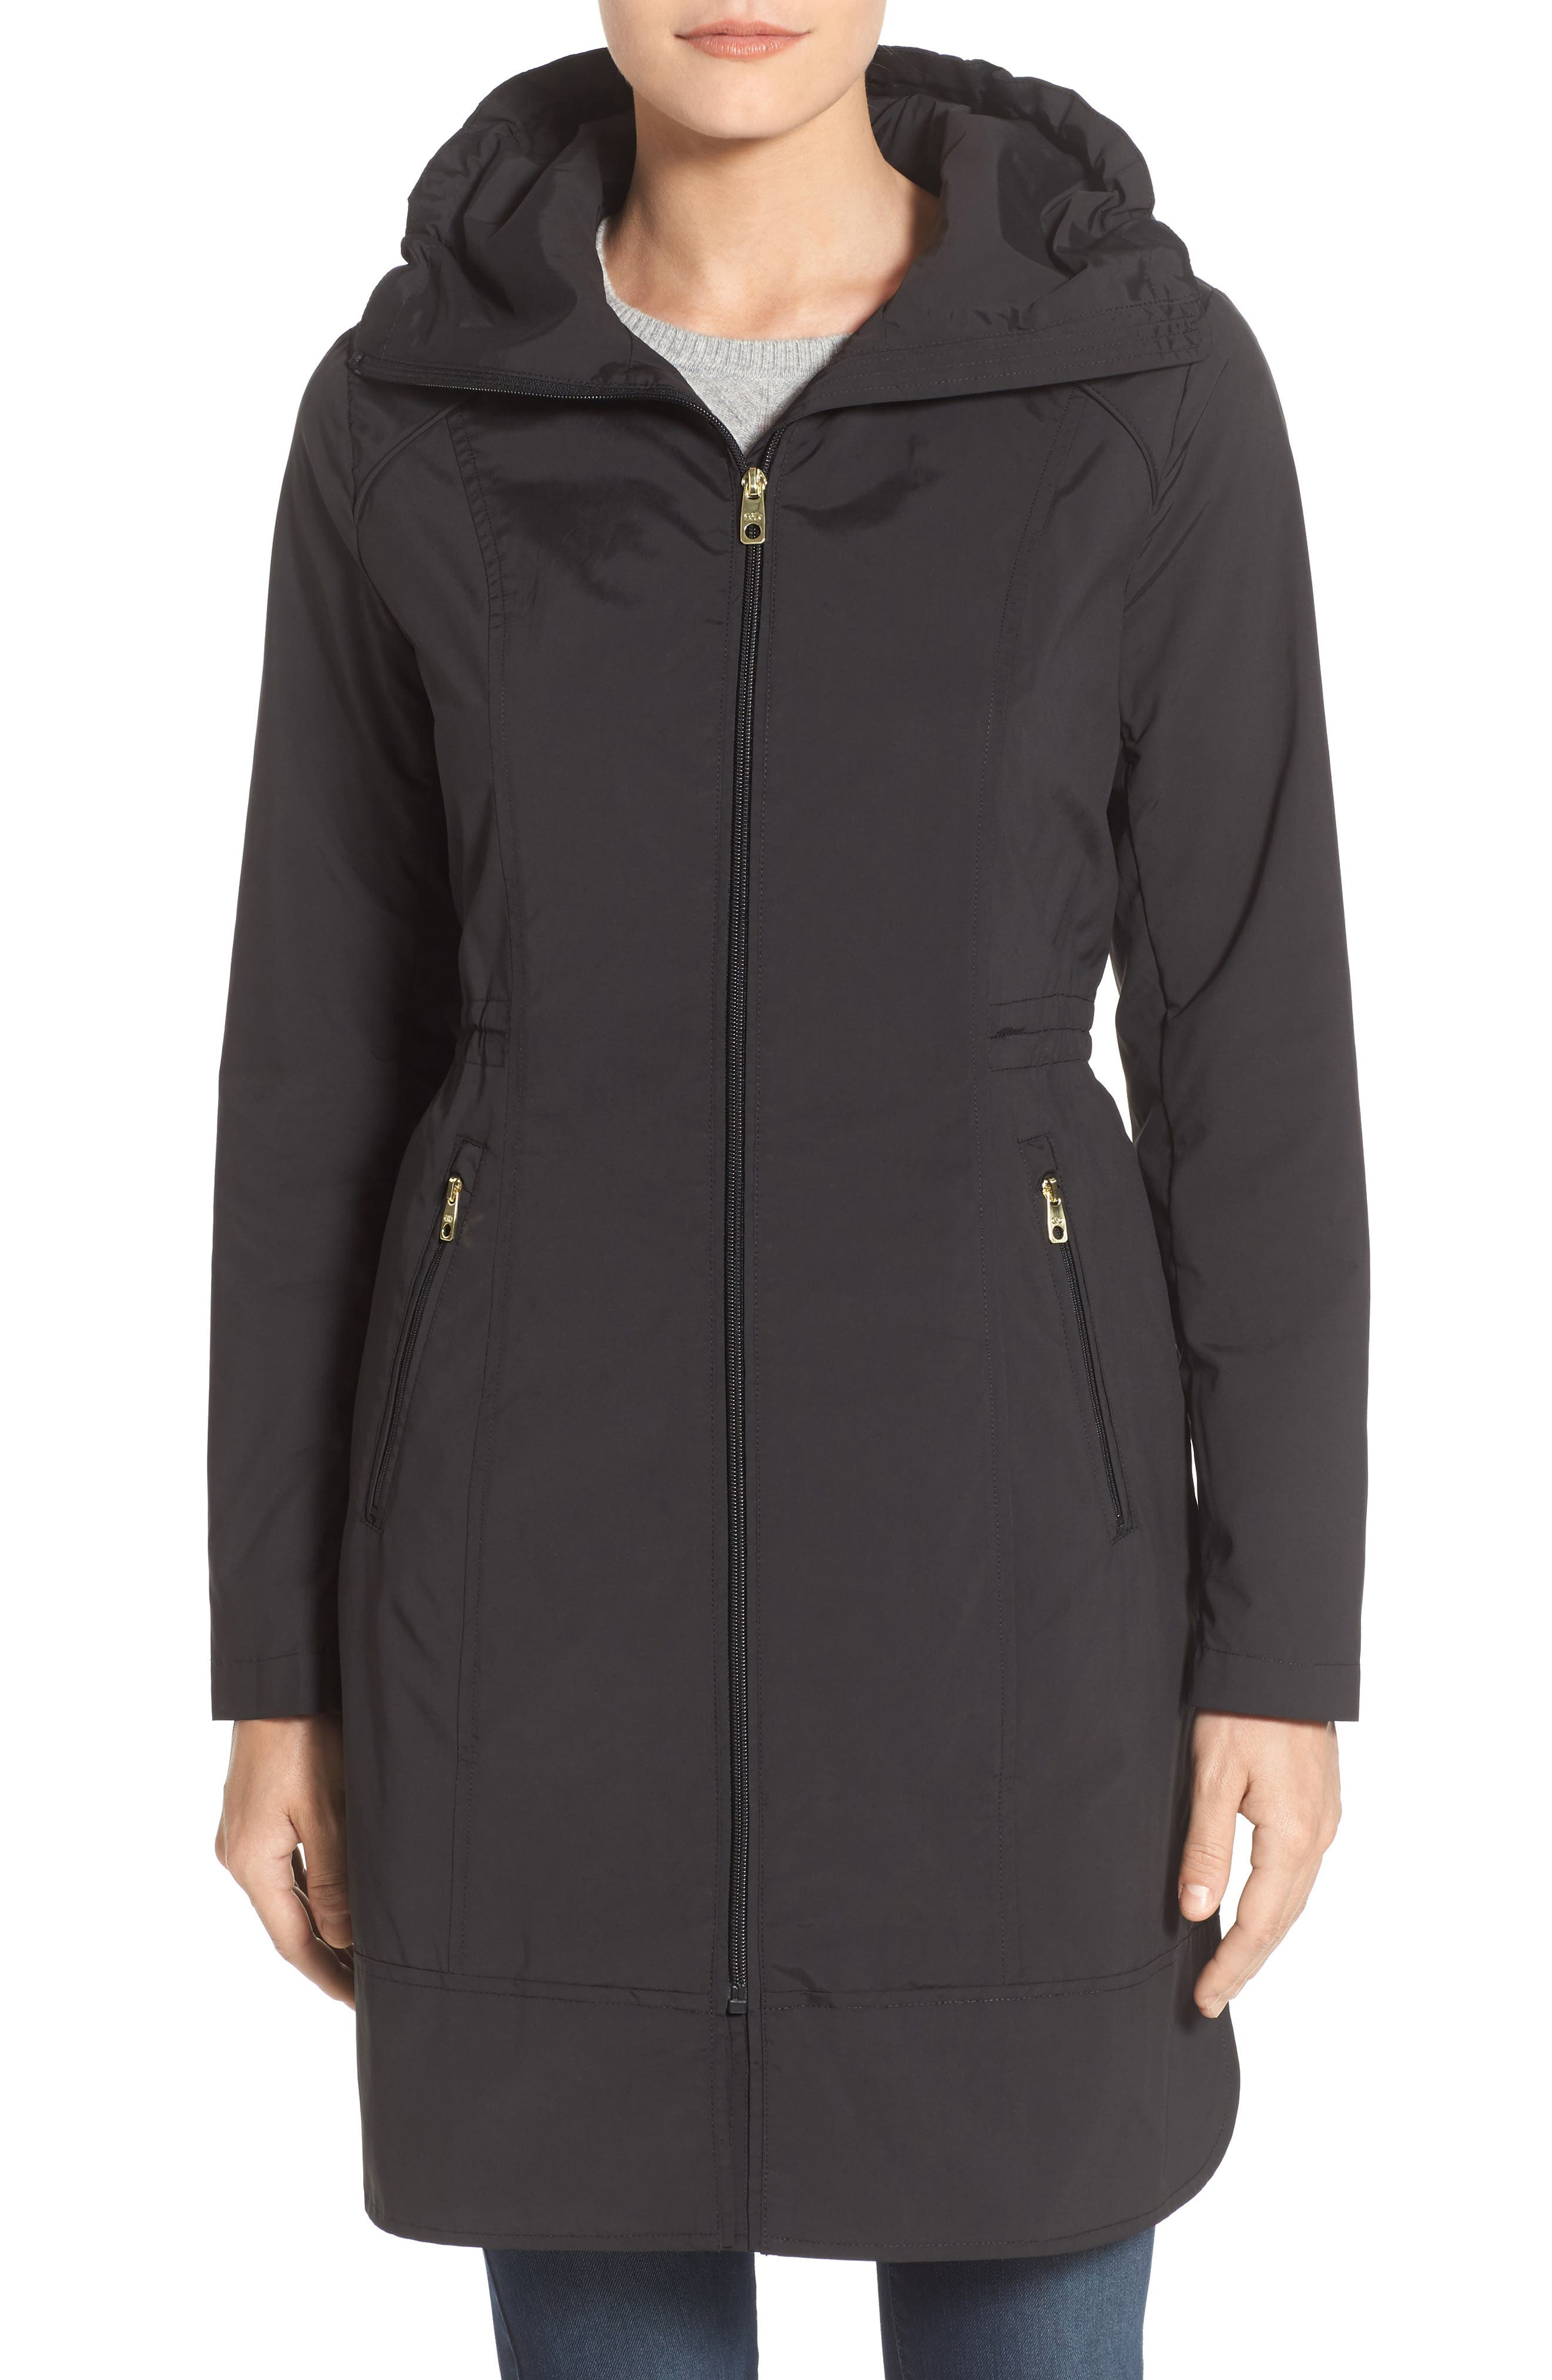 Alternate Image 1 Selected - Cole Haan Signature Packable Rain Jacket